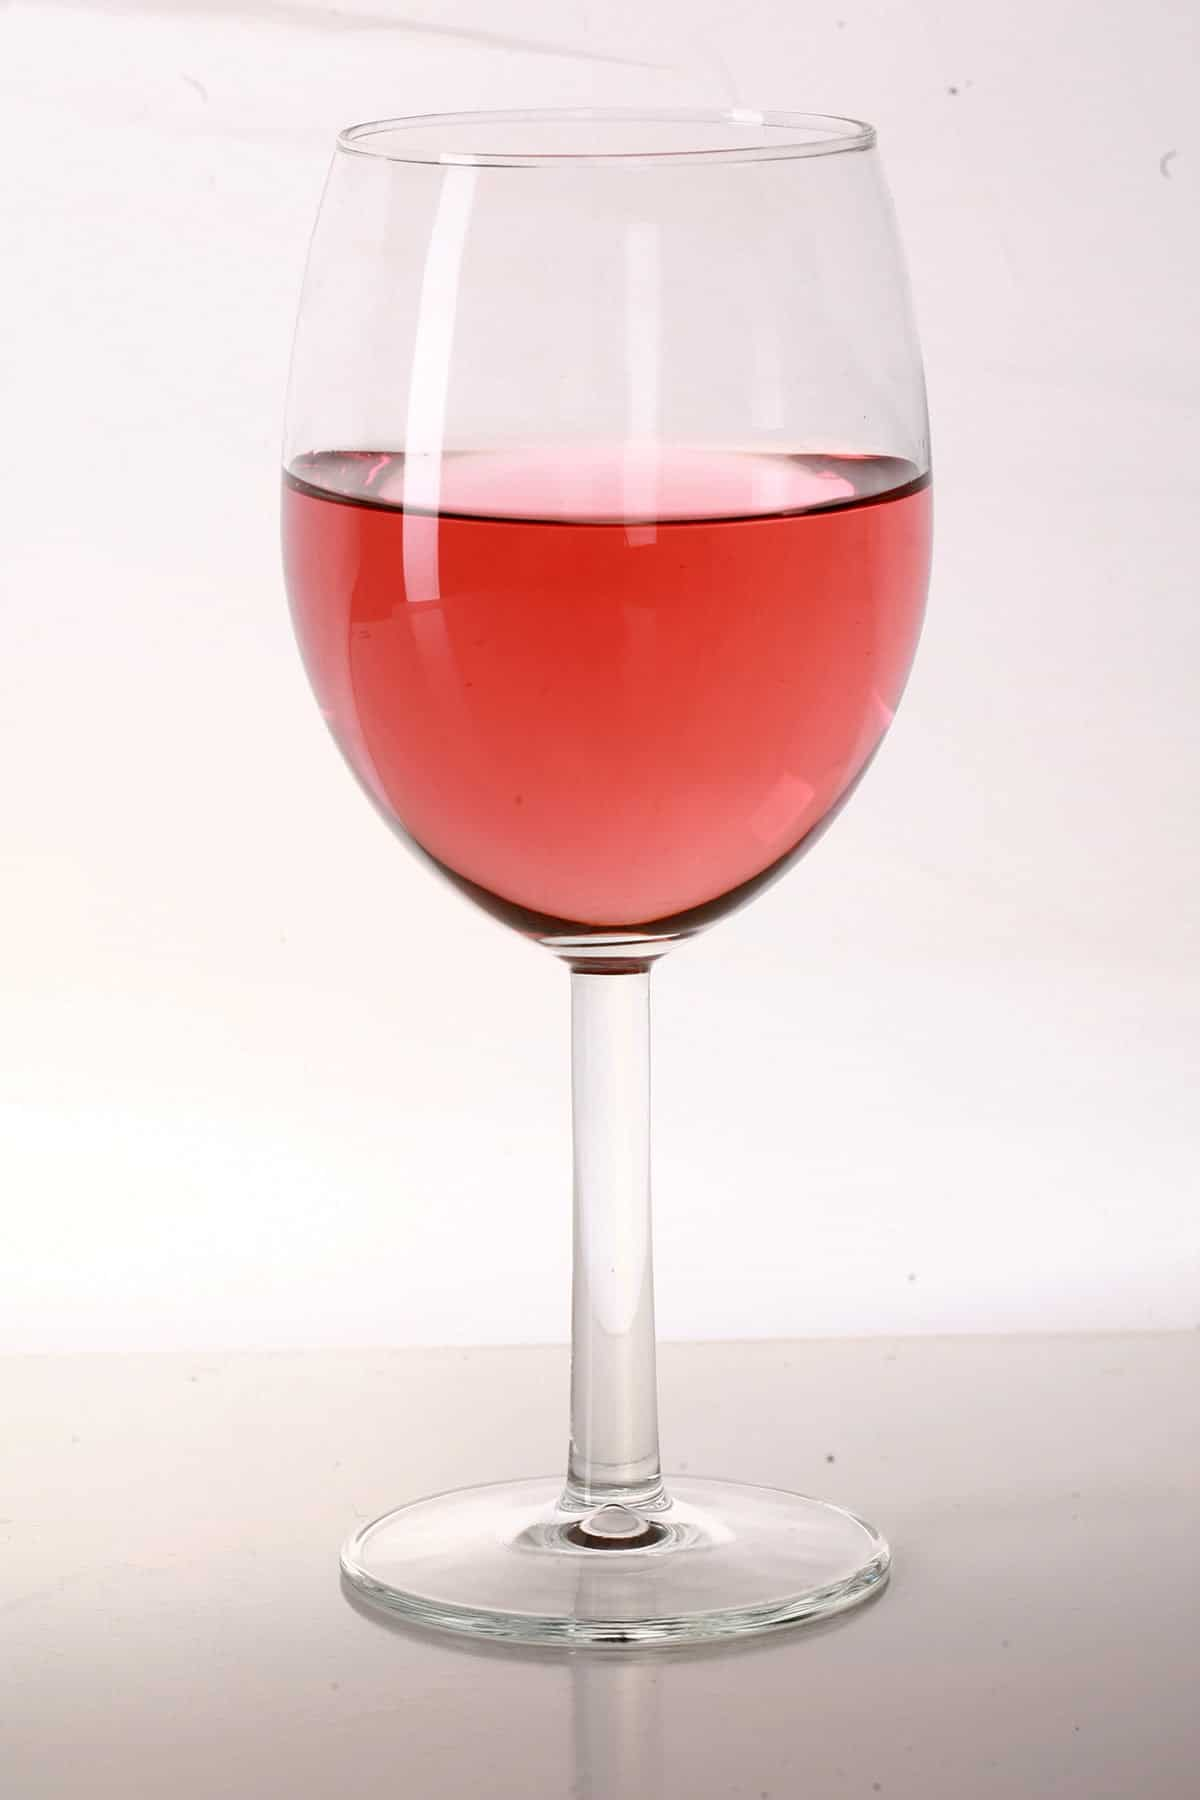 A glass of pale red strawberry wine, made with this strawberry wine recipe.